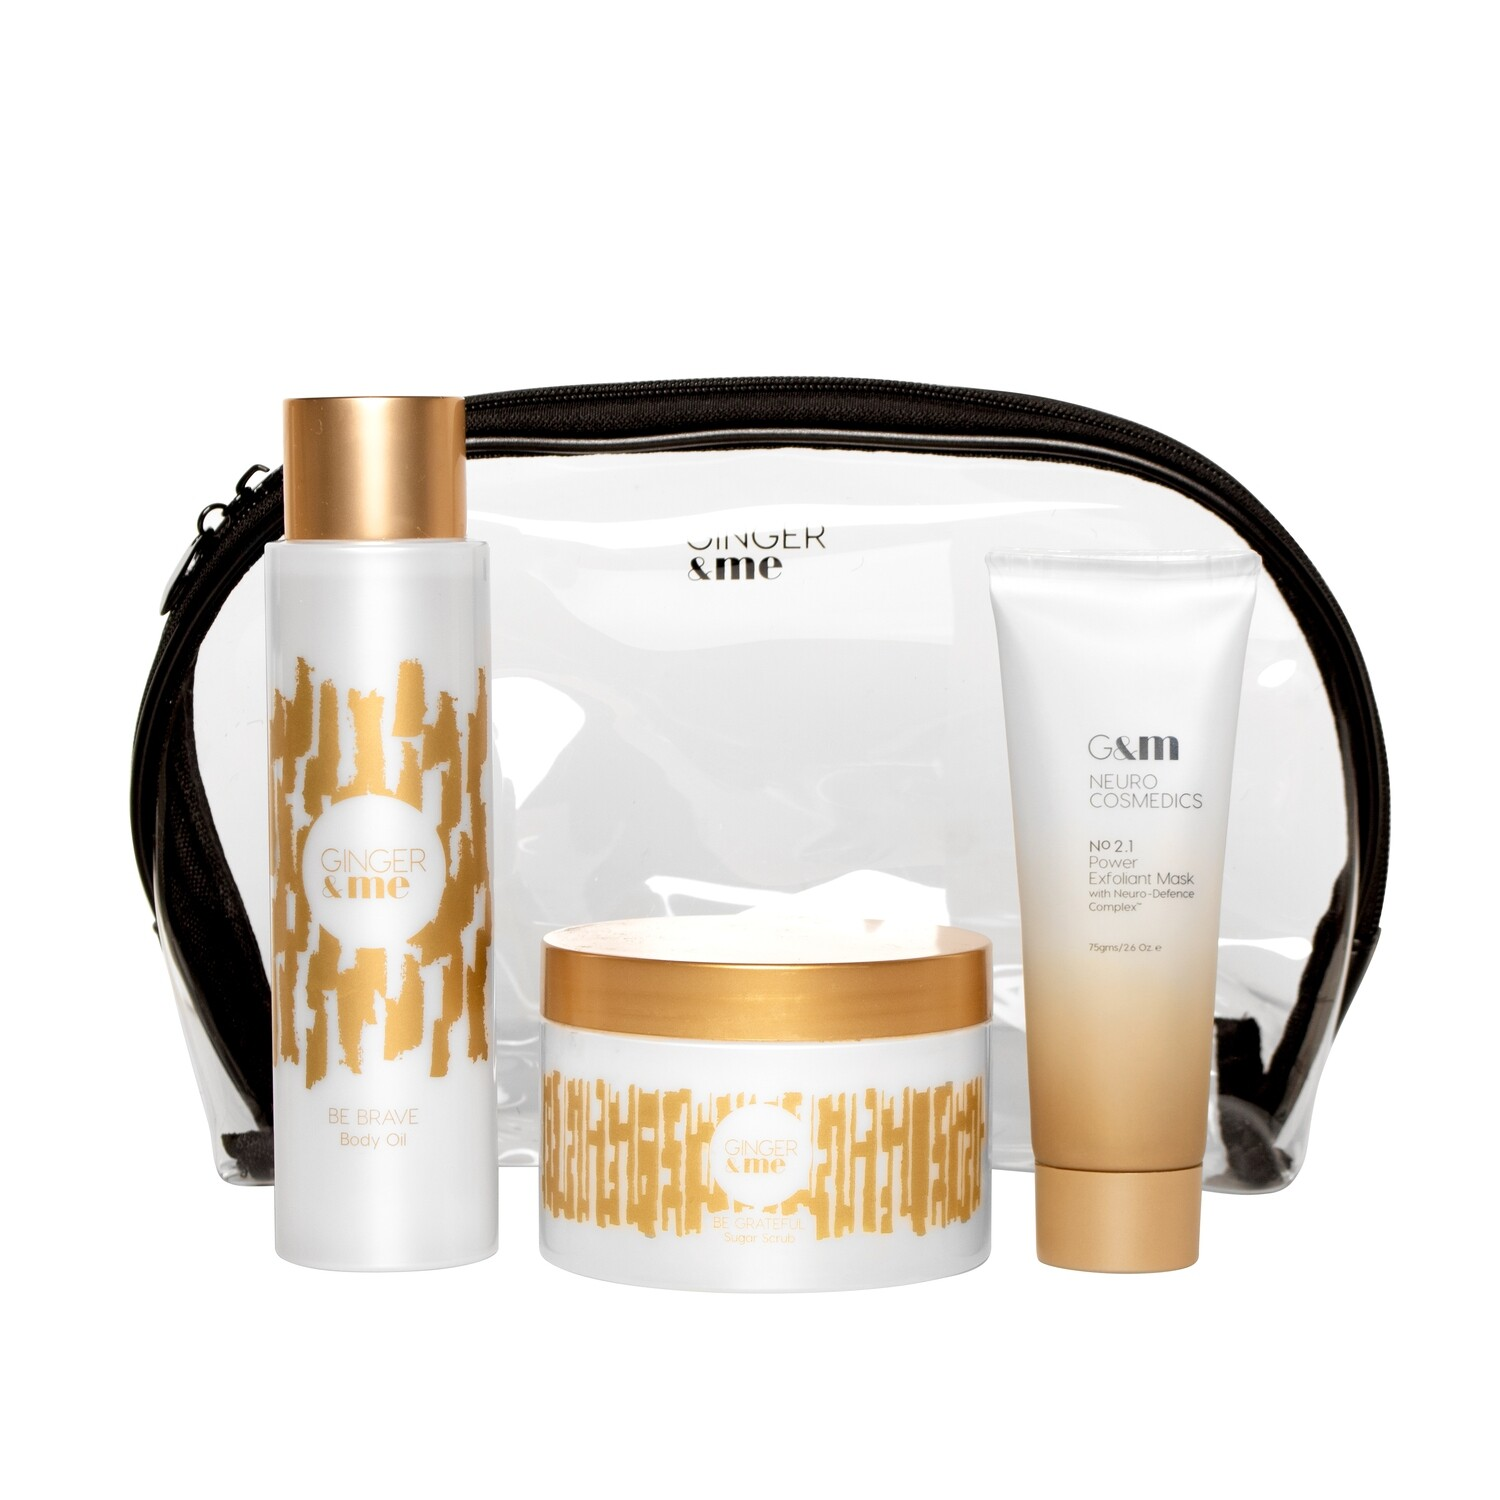 GINGER&ME Spa@Home Luxe Collection